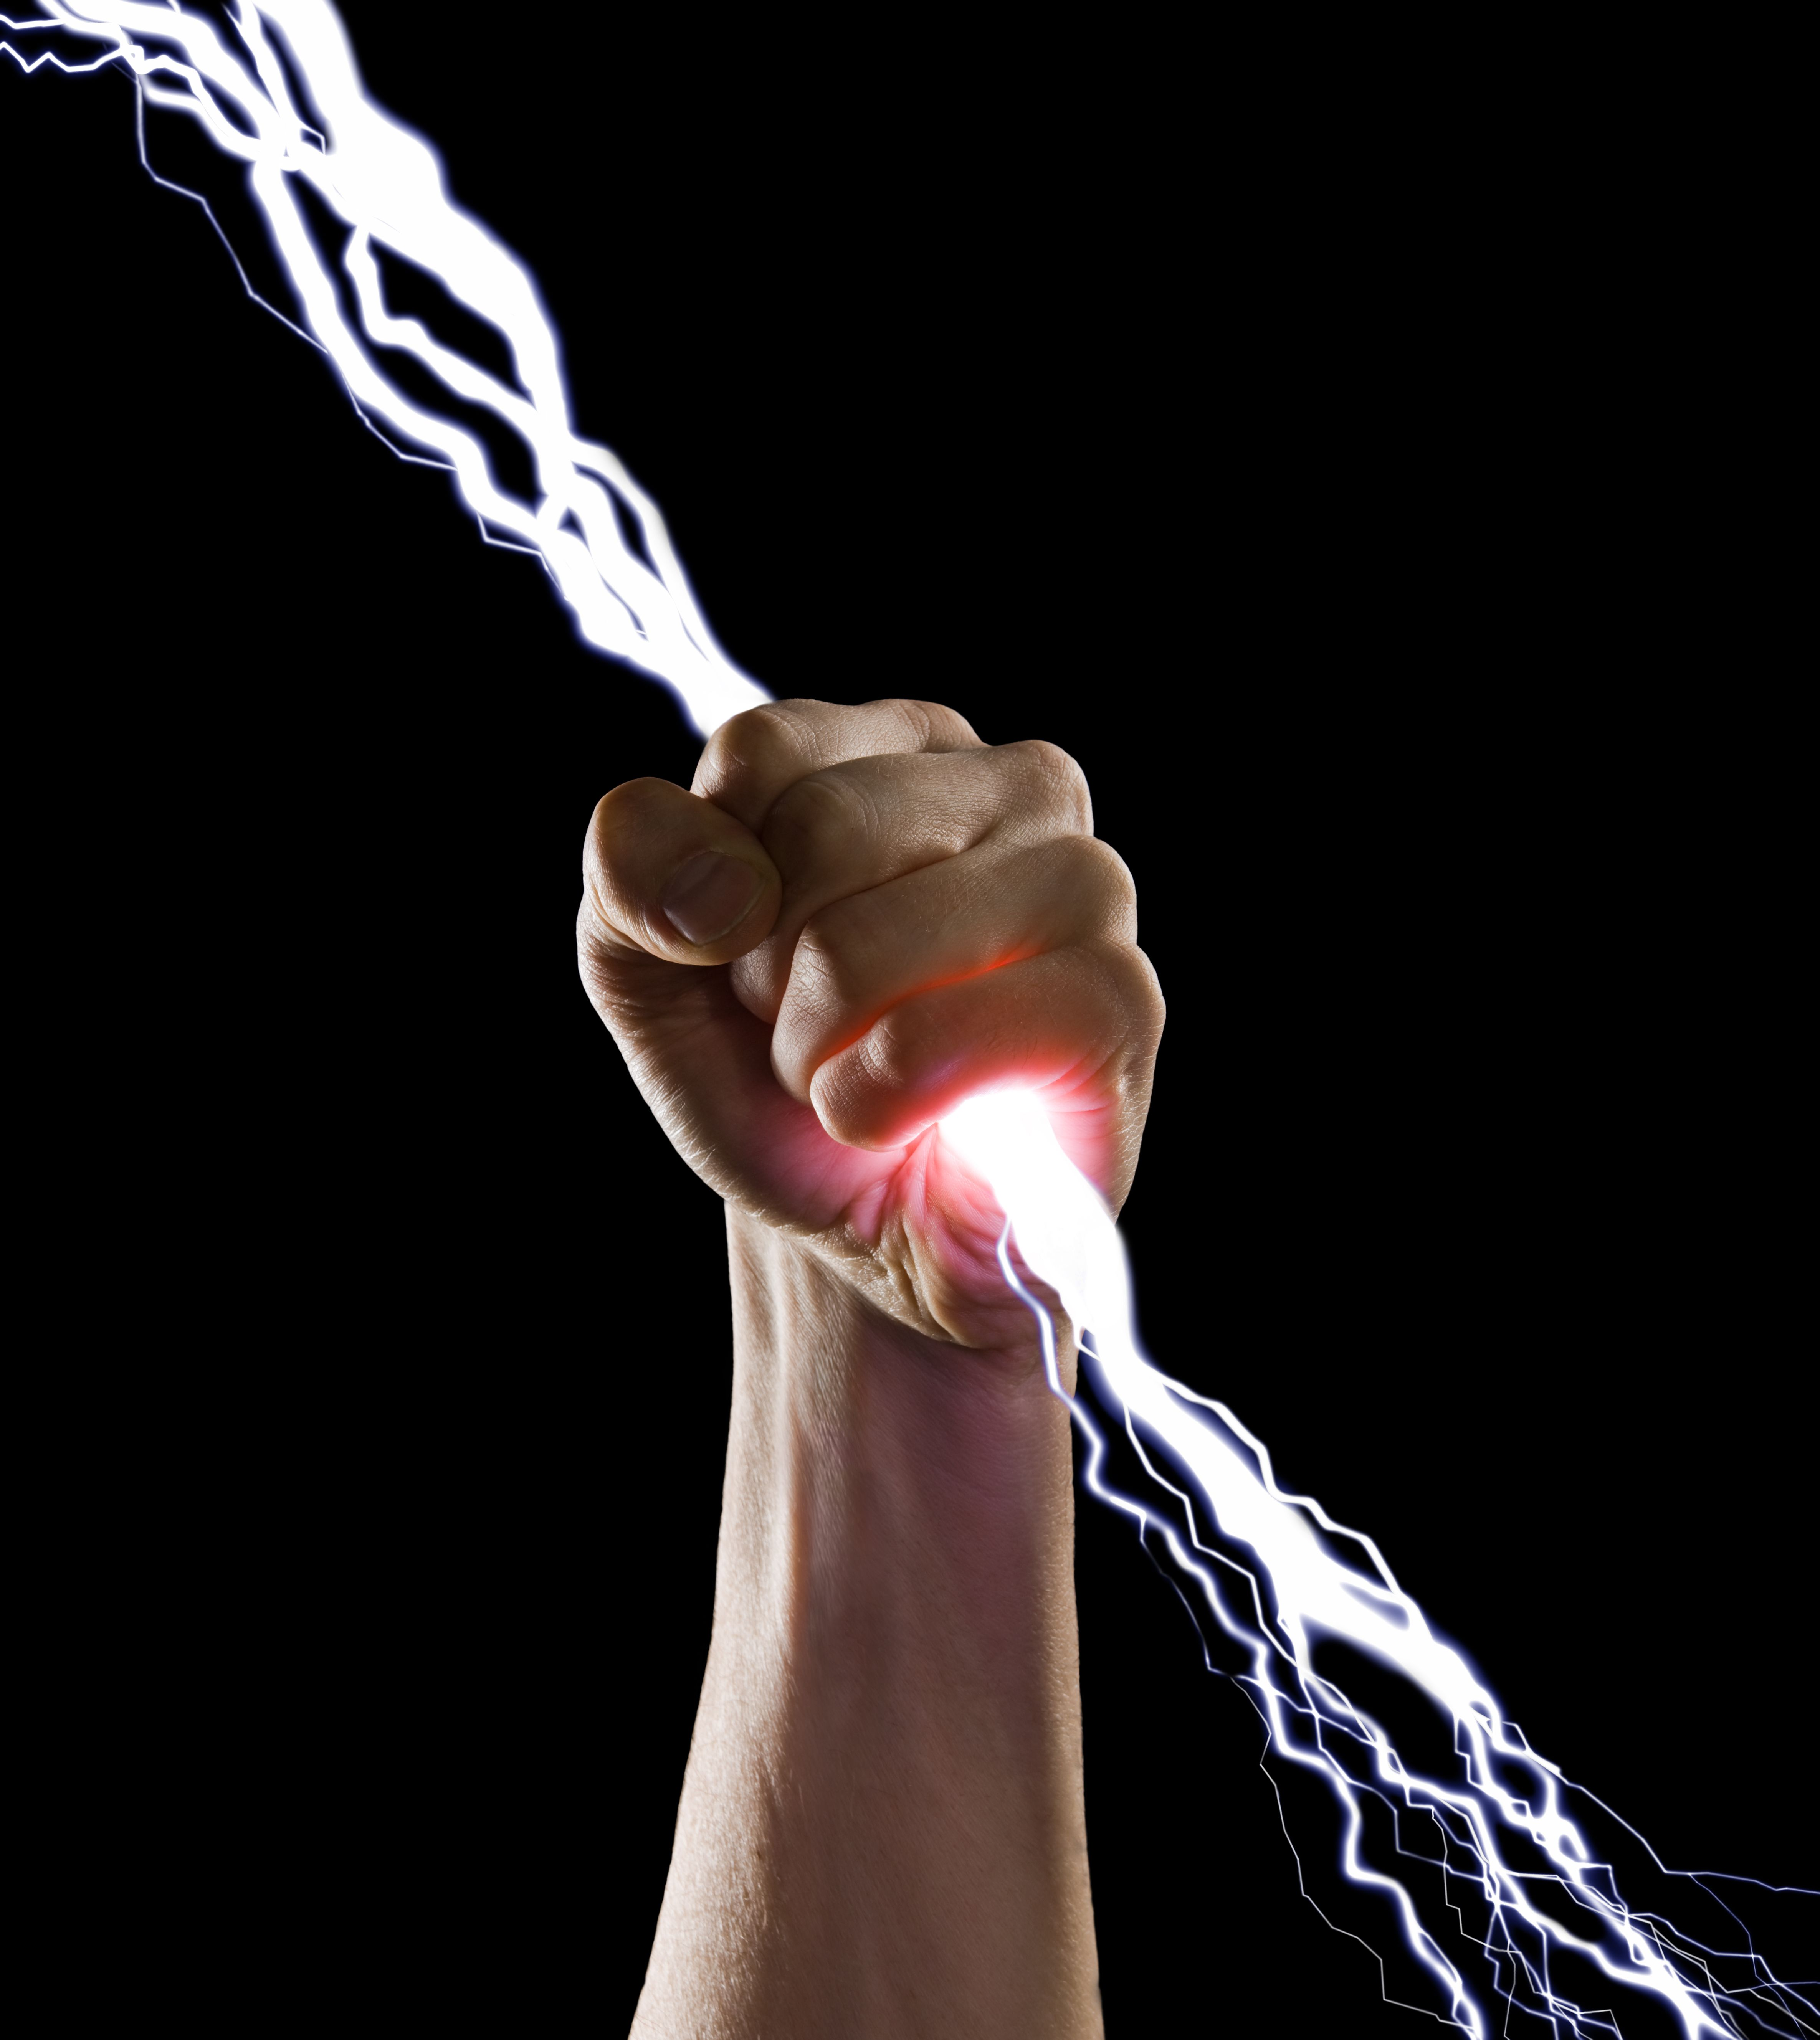 These Scientists Say They Can Control Lightning